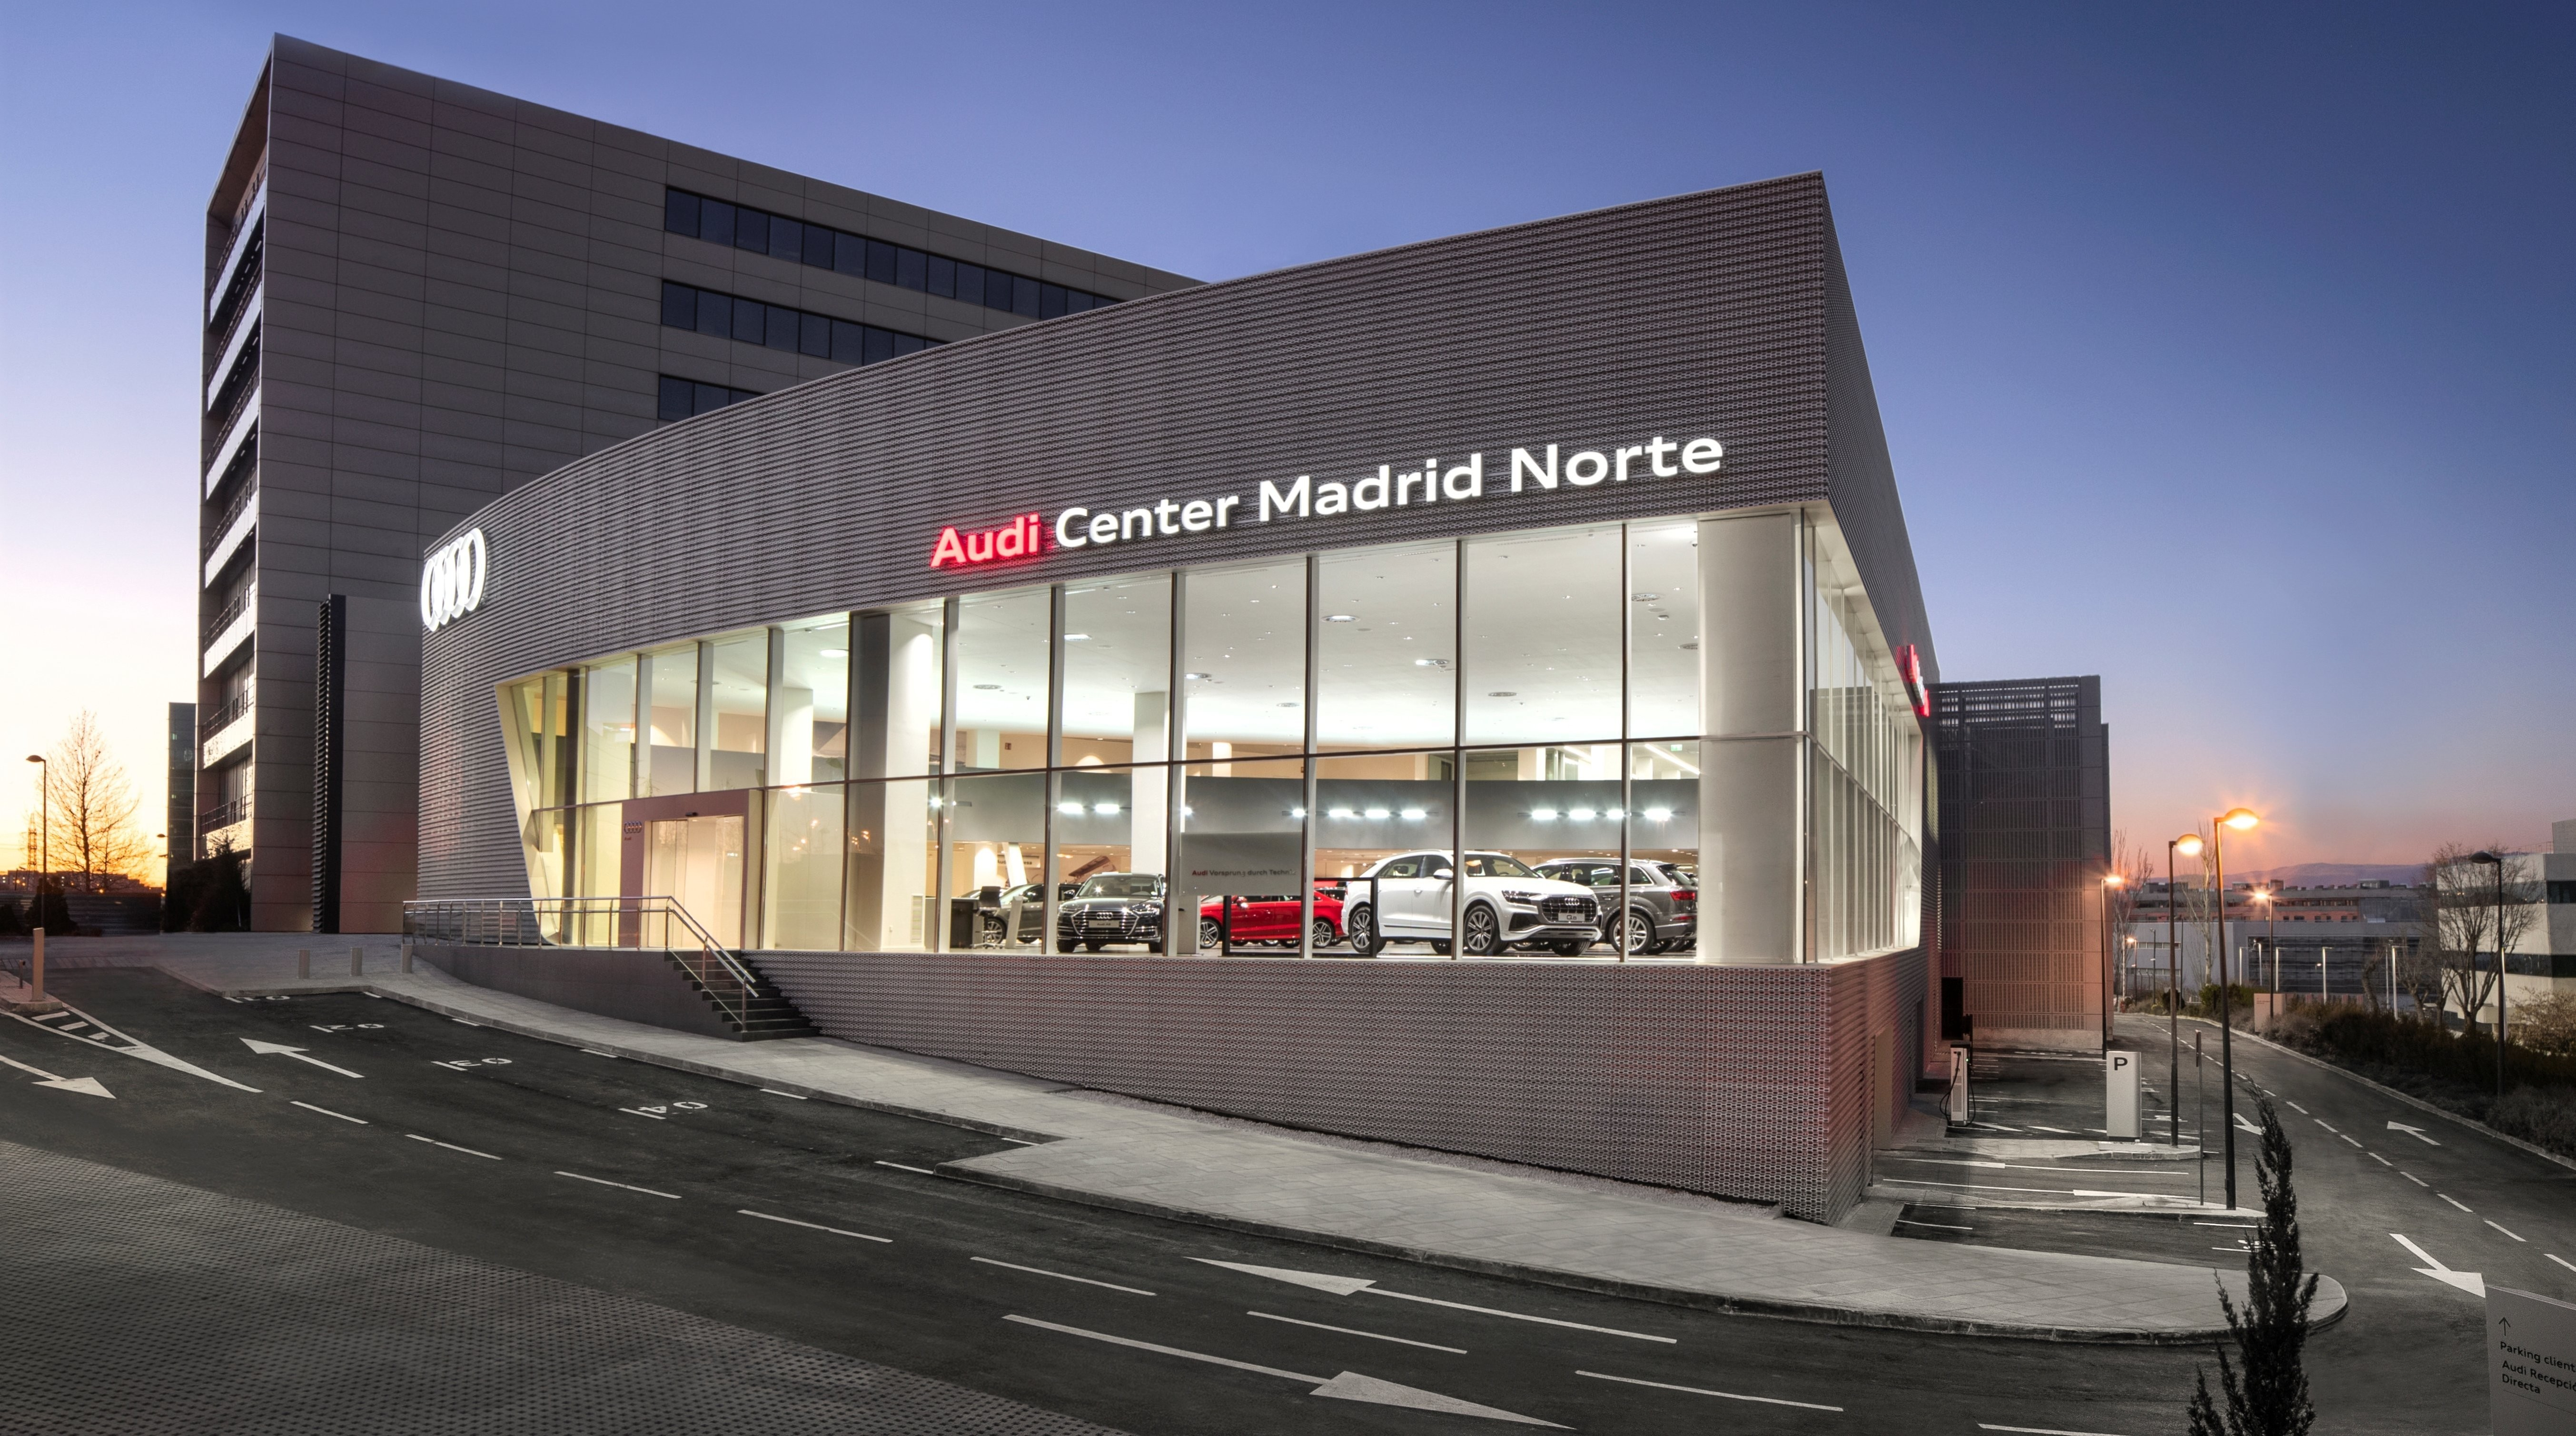 Audi Center Madrid Norte: altamente tecnológico